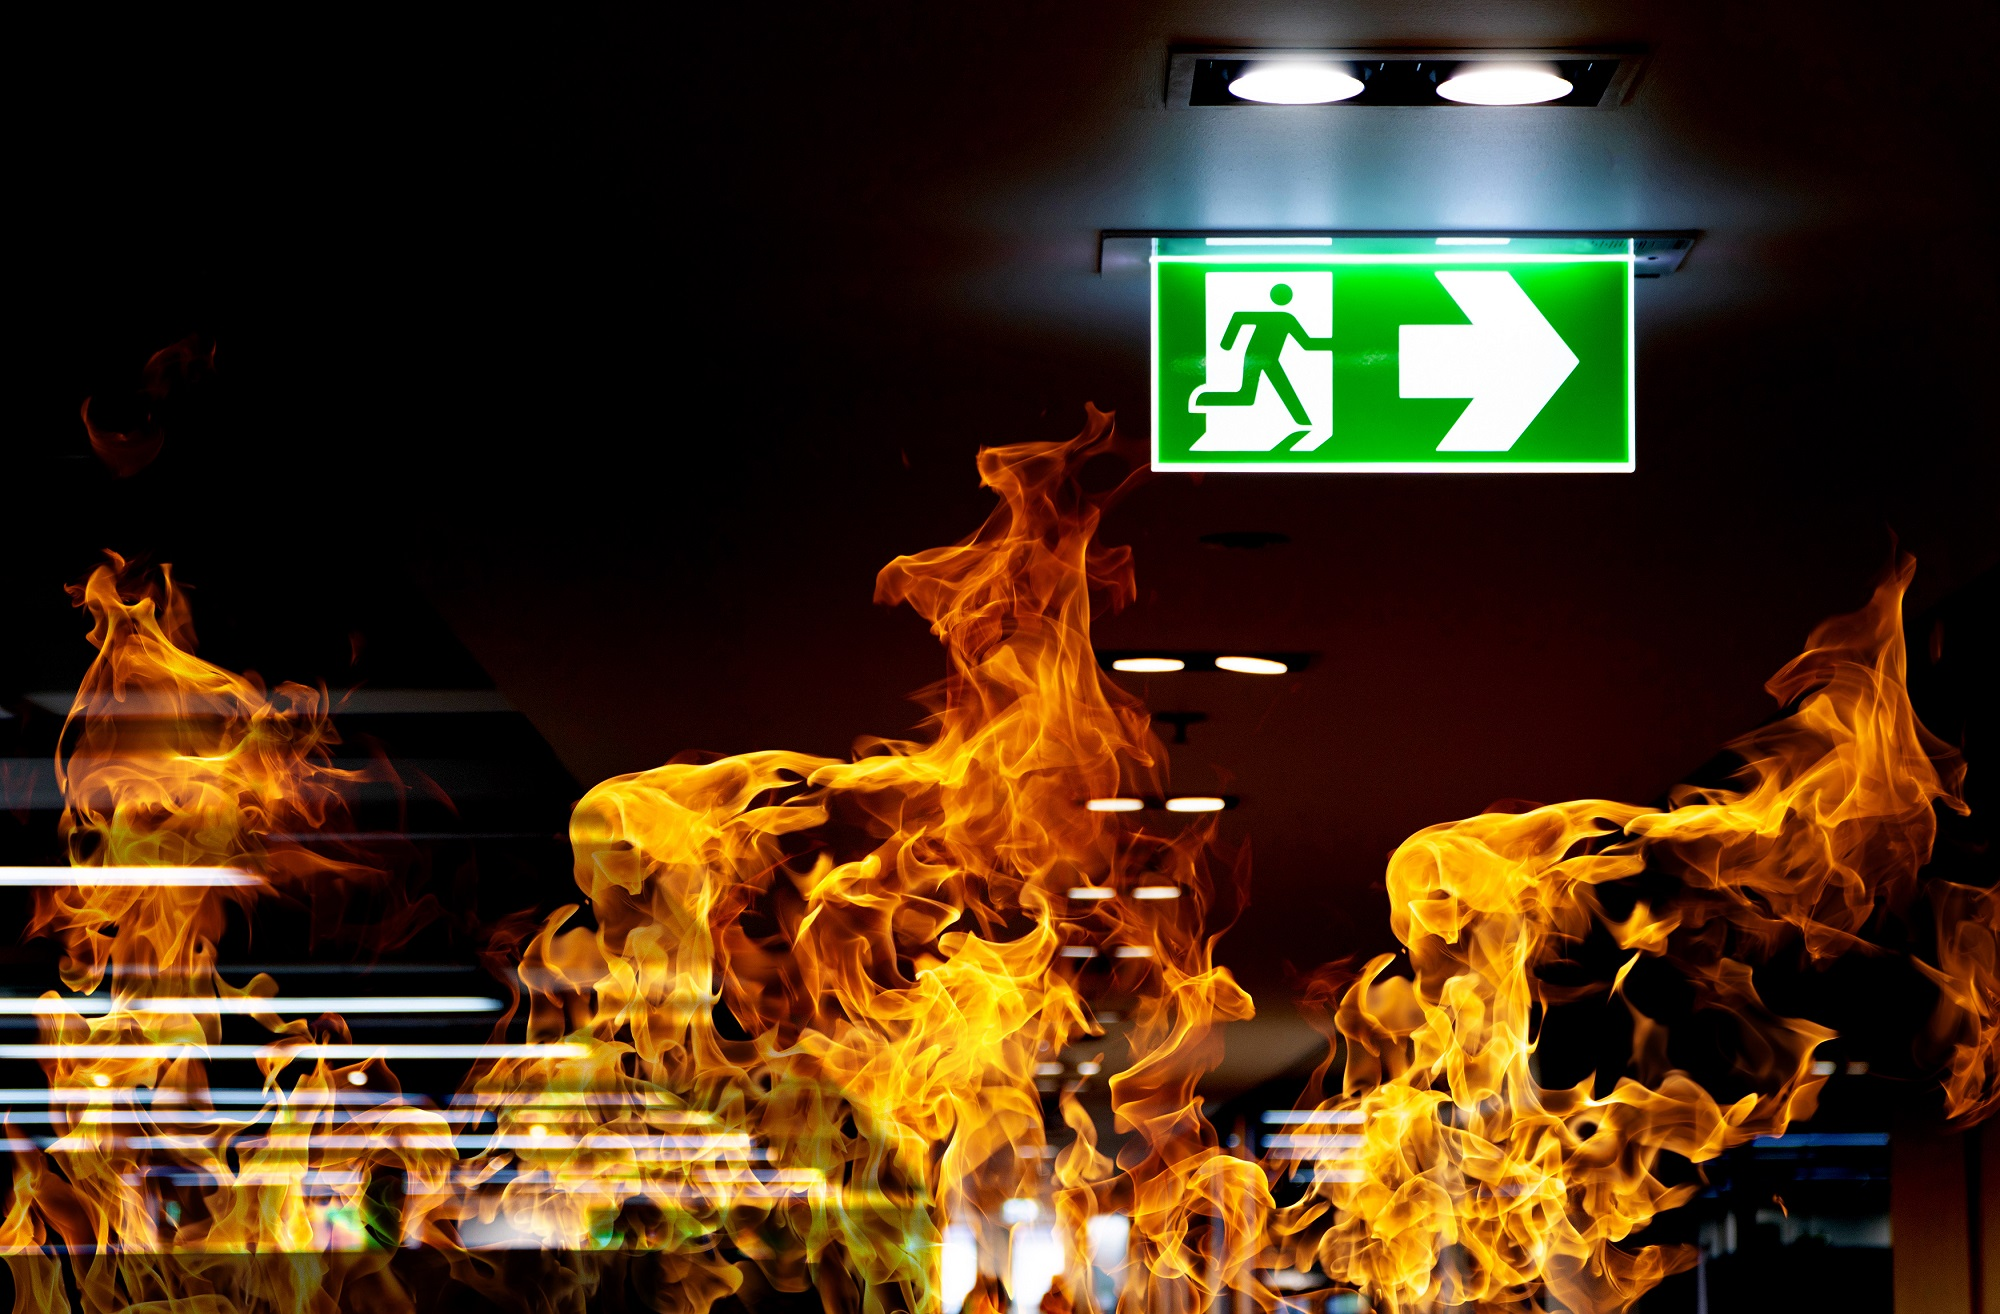 Fire Safety and Evacuation (Rospa Approved)